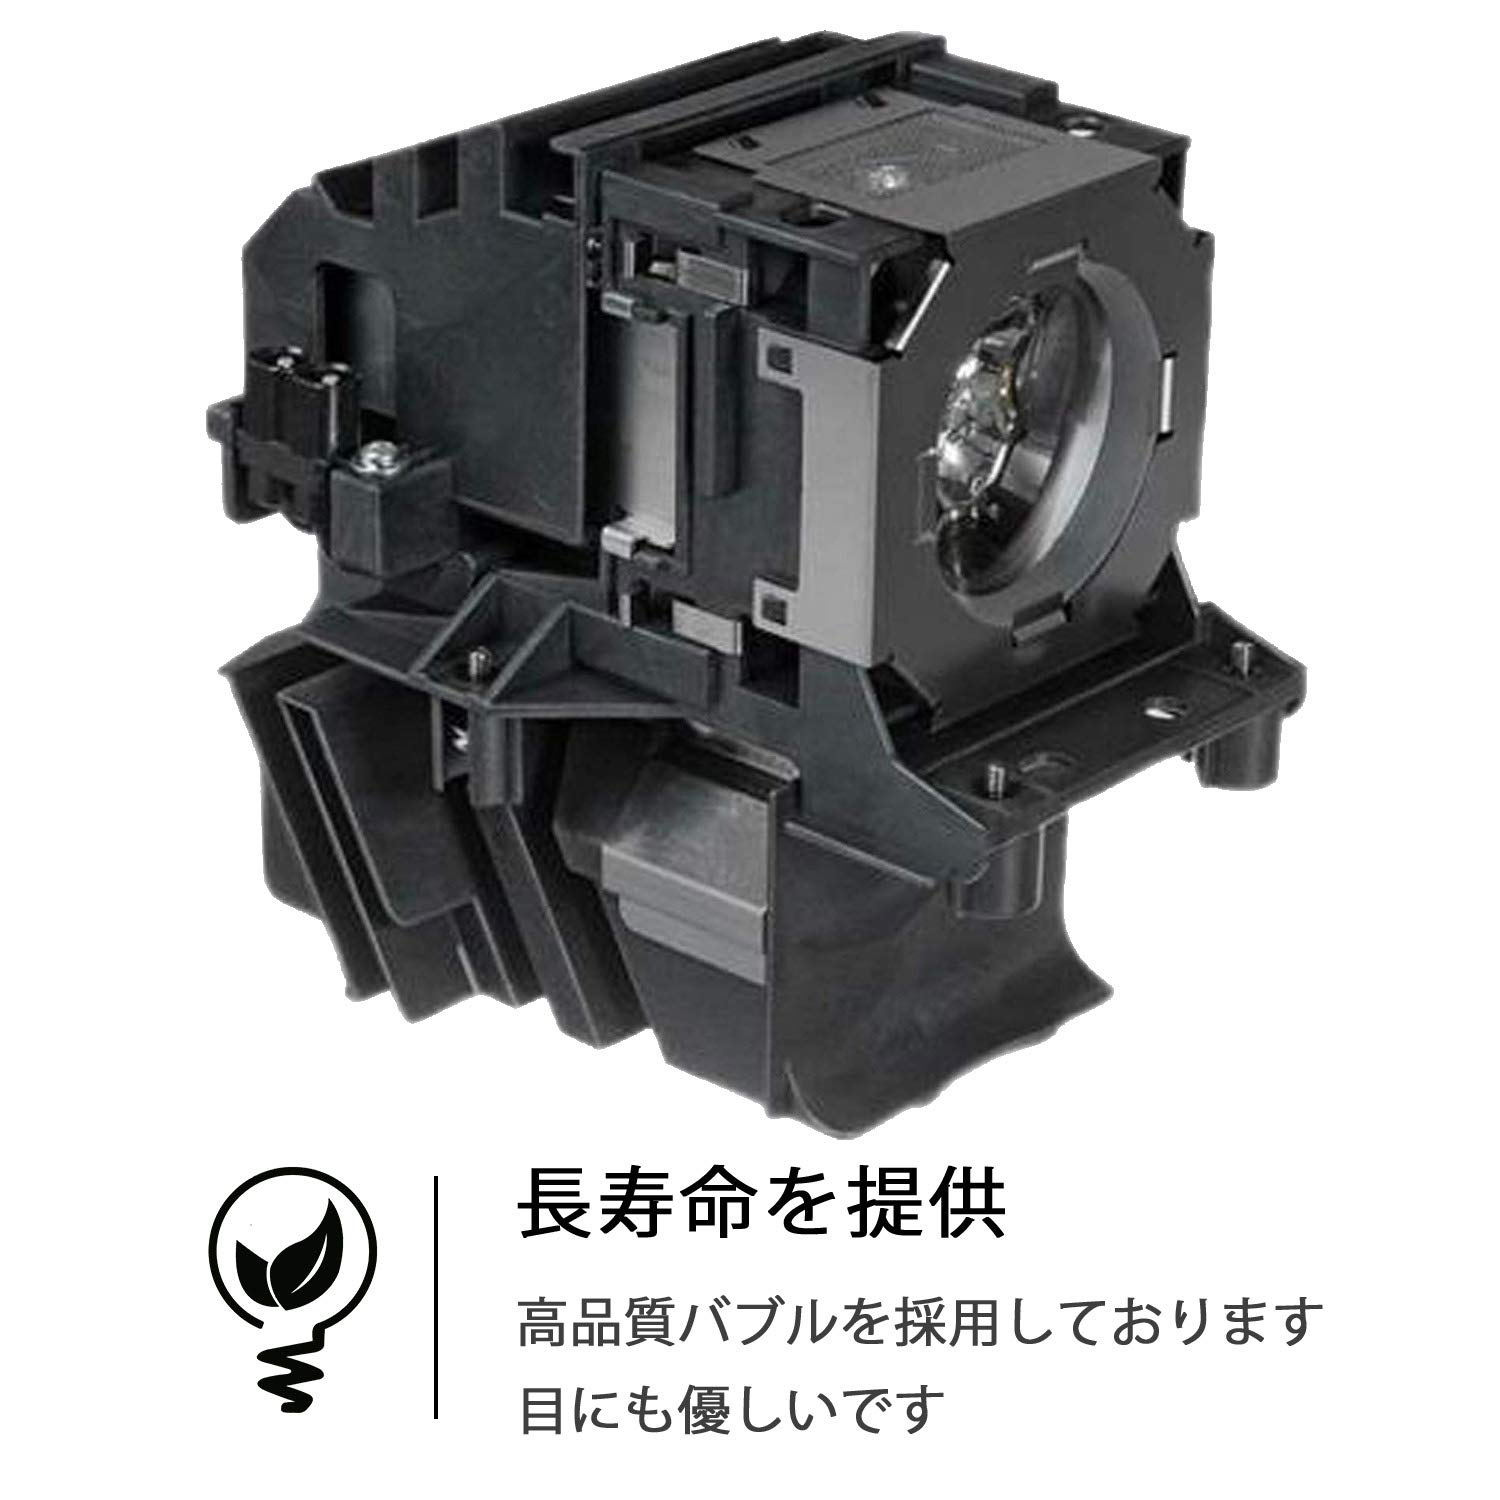 for NEC P452H Projector Lamp Replacement Assembly with Genuine Original OEM Philips UHP Bulb Inside IET Lamps